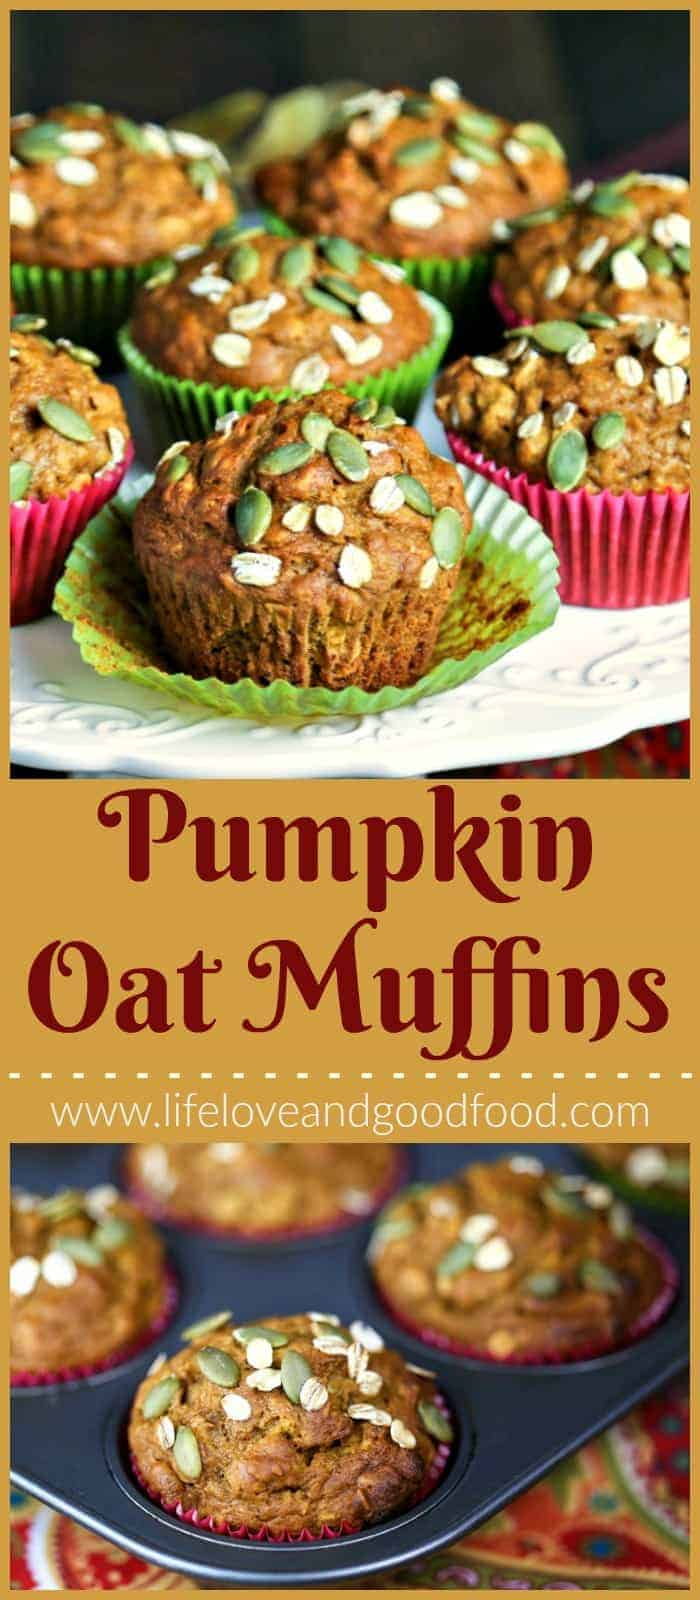 Make these Pumpkin Oat Muffins with whole wheat flour for a healthier, whole grain muffin sweetened with dark brown sugar and maple syrup. #muffins #pumpkinmuffins